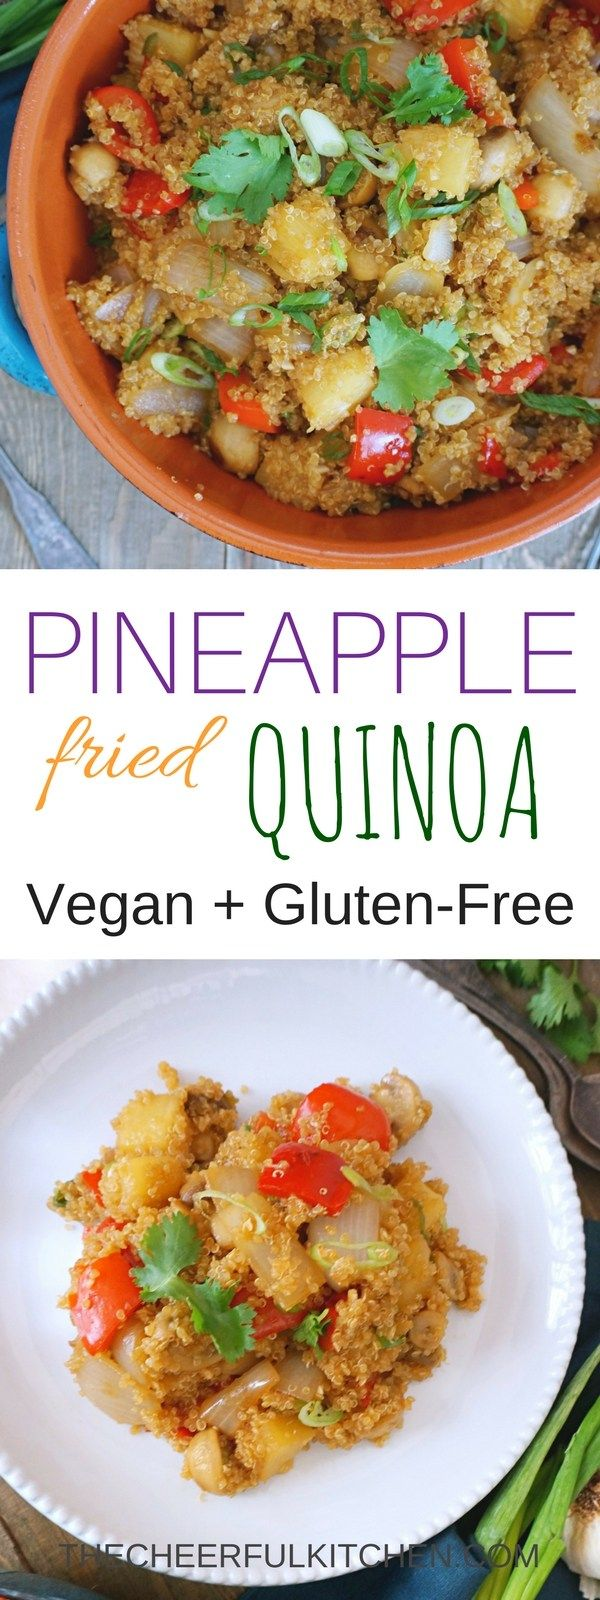 Pineapple Fried Quinoa is a vegan and gluten-free alternative to traditional fried rice. It's an easy dinner that is healthy and completely delicious. Get the recipe at The Cheerful Kitchen.